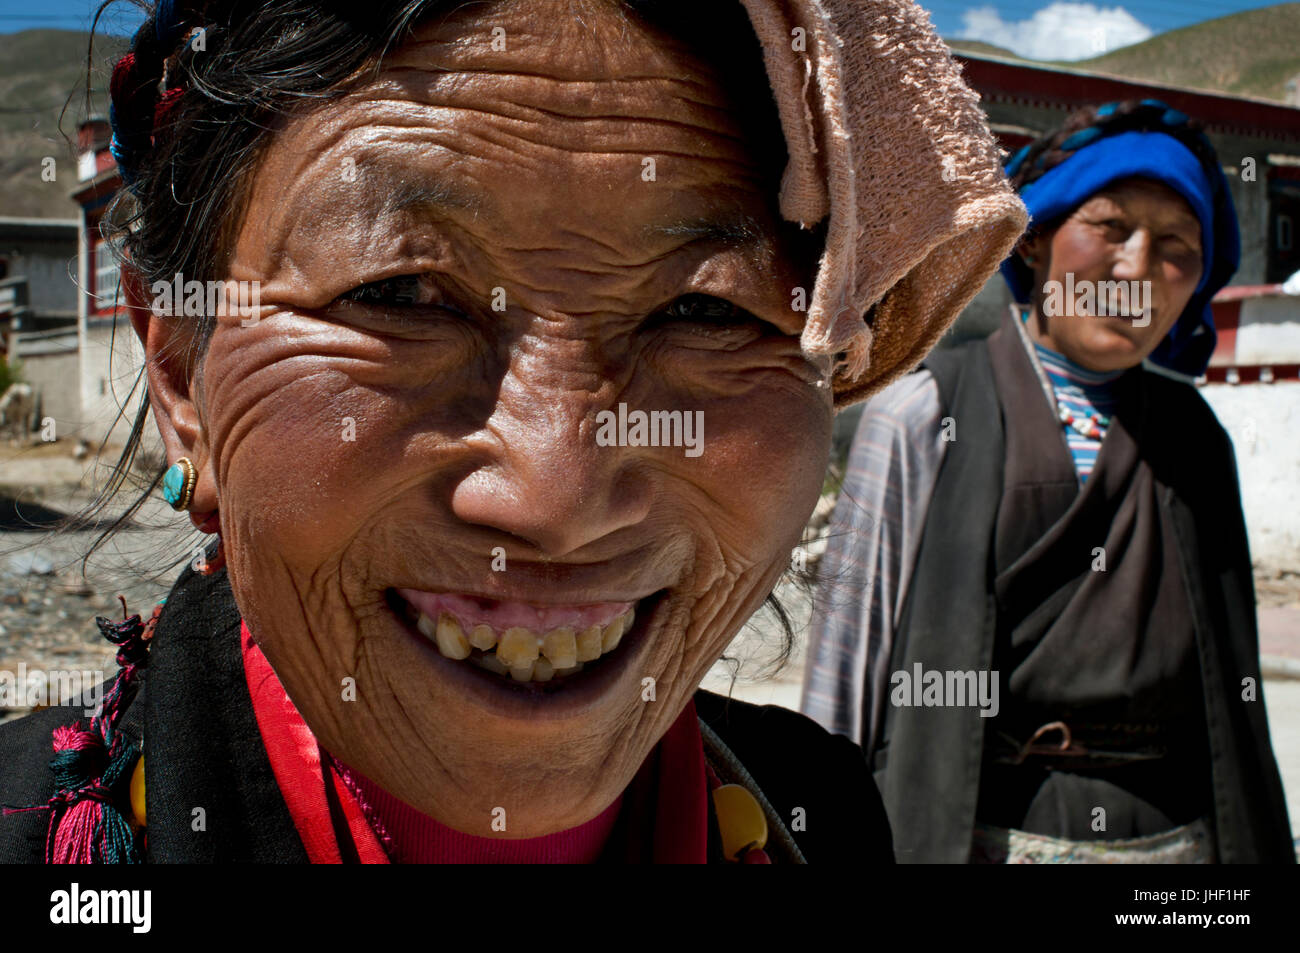 Women in the village of Bainans, located along the road separating Shigatse from Gyantse, Tibet, China. - Stock Image